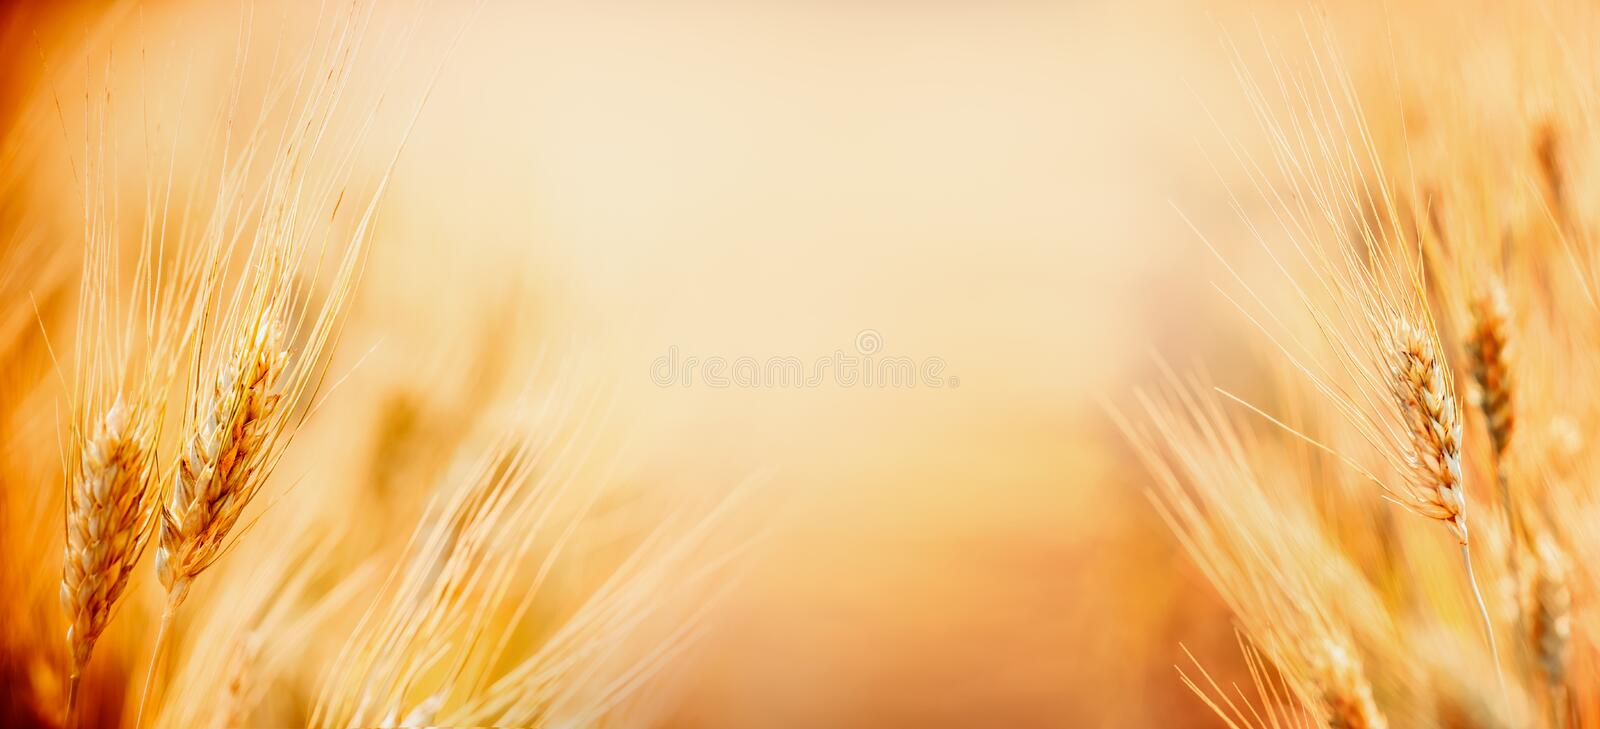 Beautiful nature background with close up of Ears of ripe wheat on Cereal field, place for text close up, fame. Agriculture farm stock photography